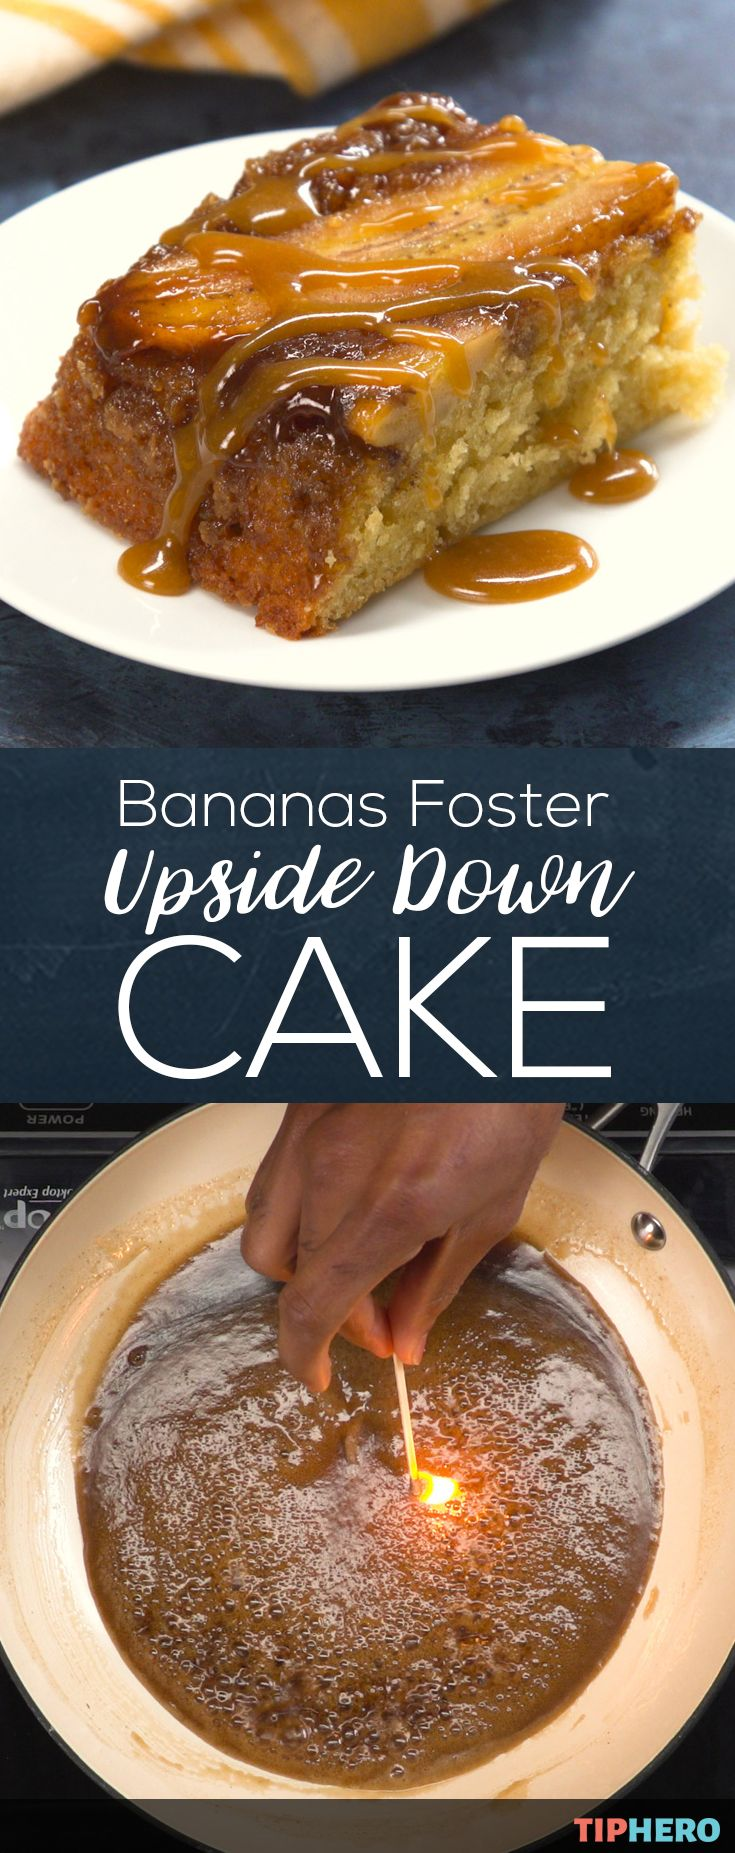 We put together two impressive desserts in one delicious cake for this Bananas Foster Upside Down Cake recipe. The Bananas Foster Upside Down Cake features the classic cake, topped with bananas slathered in that one-of-a-kind fosters rum sauce, for a flavor packed cake. Click for the recipe and how to video.